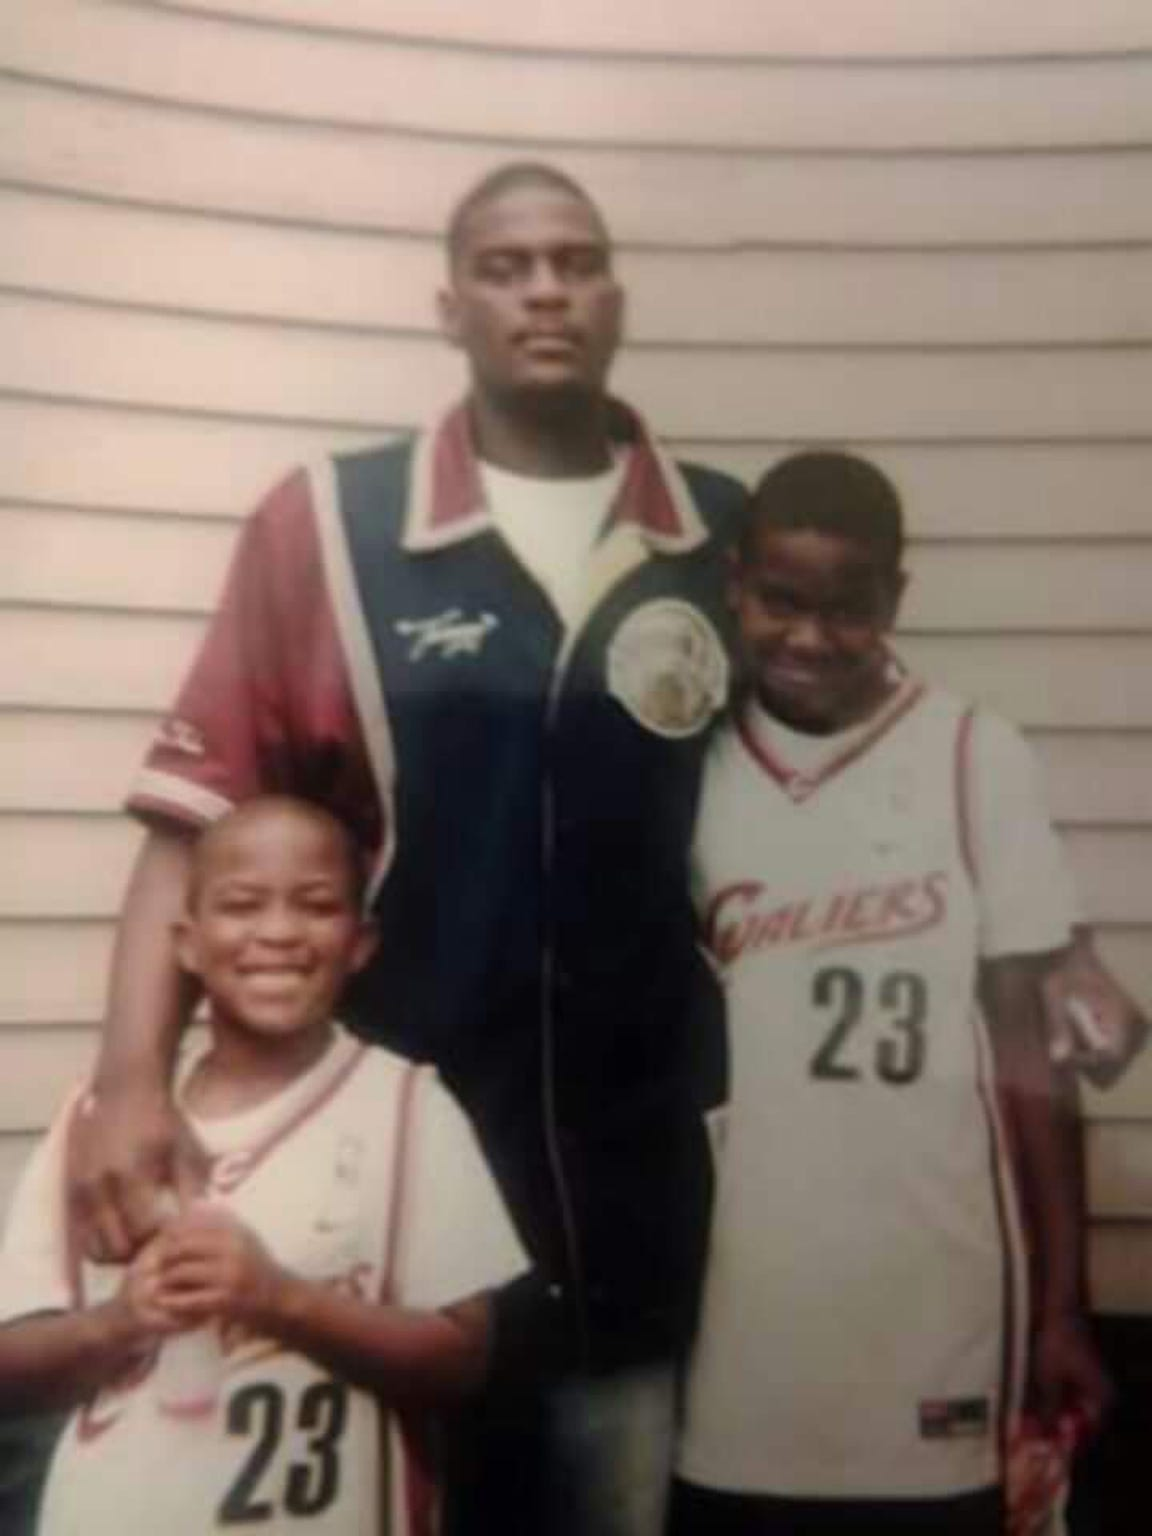 Frank (right) and Christian (left) pose with their father Frank Clark III in matching LeBron James jerseys.